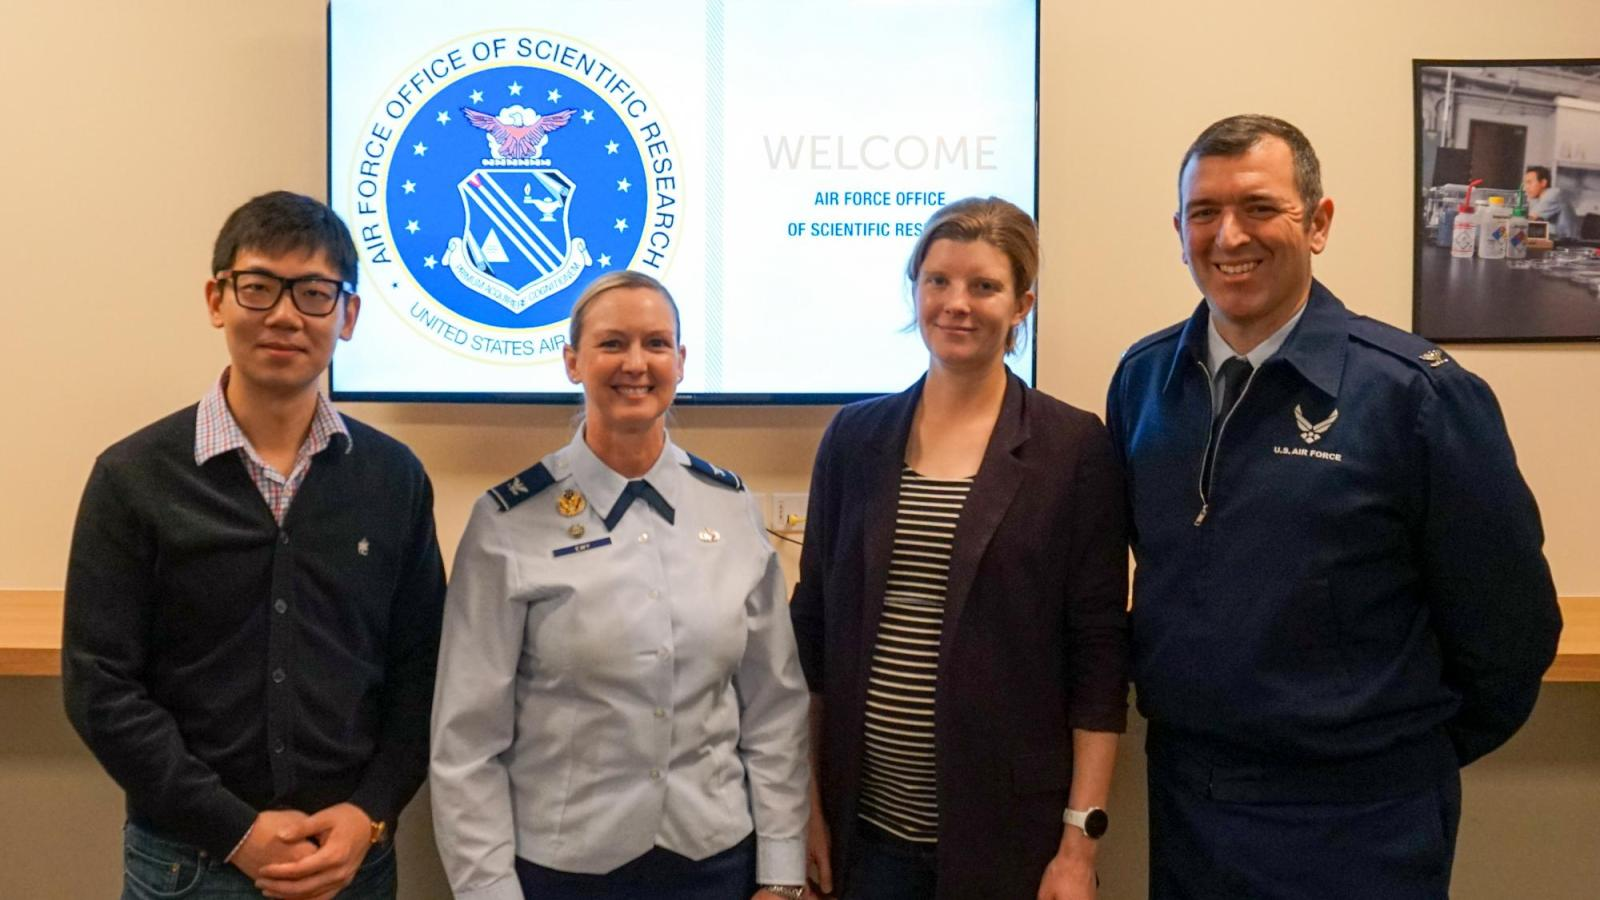 CU Engineering and Air Force representatives pose for photo